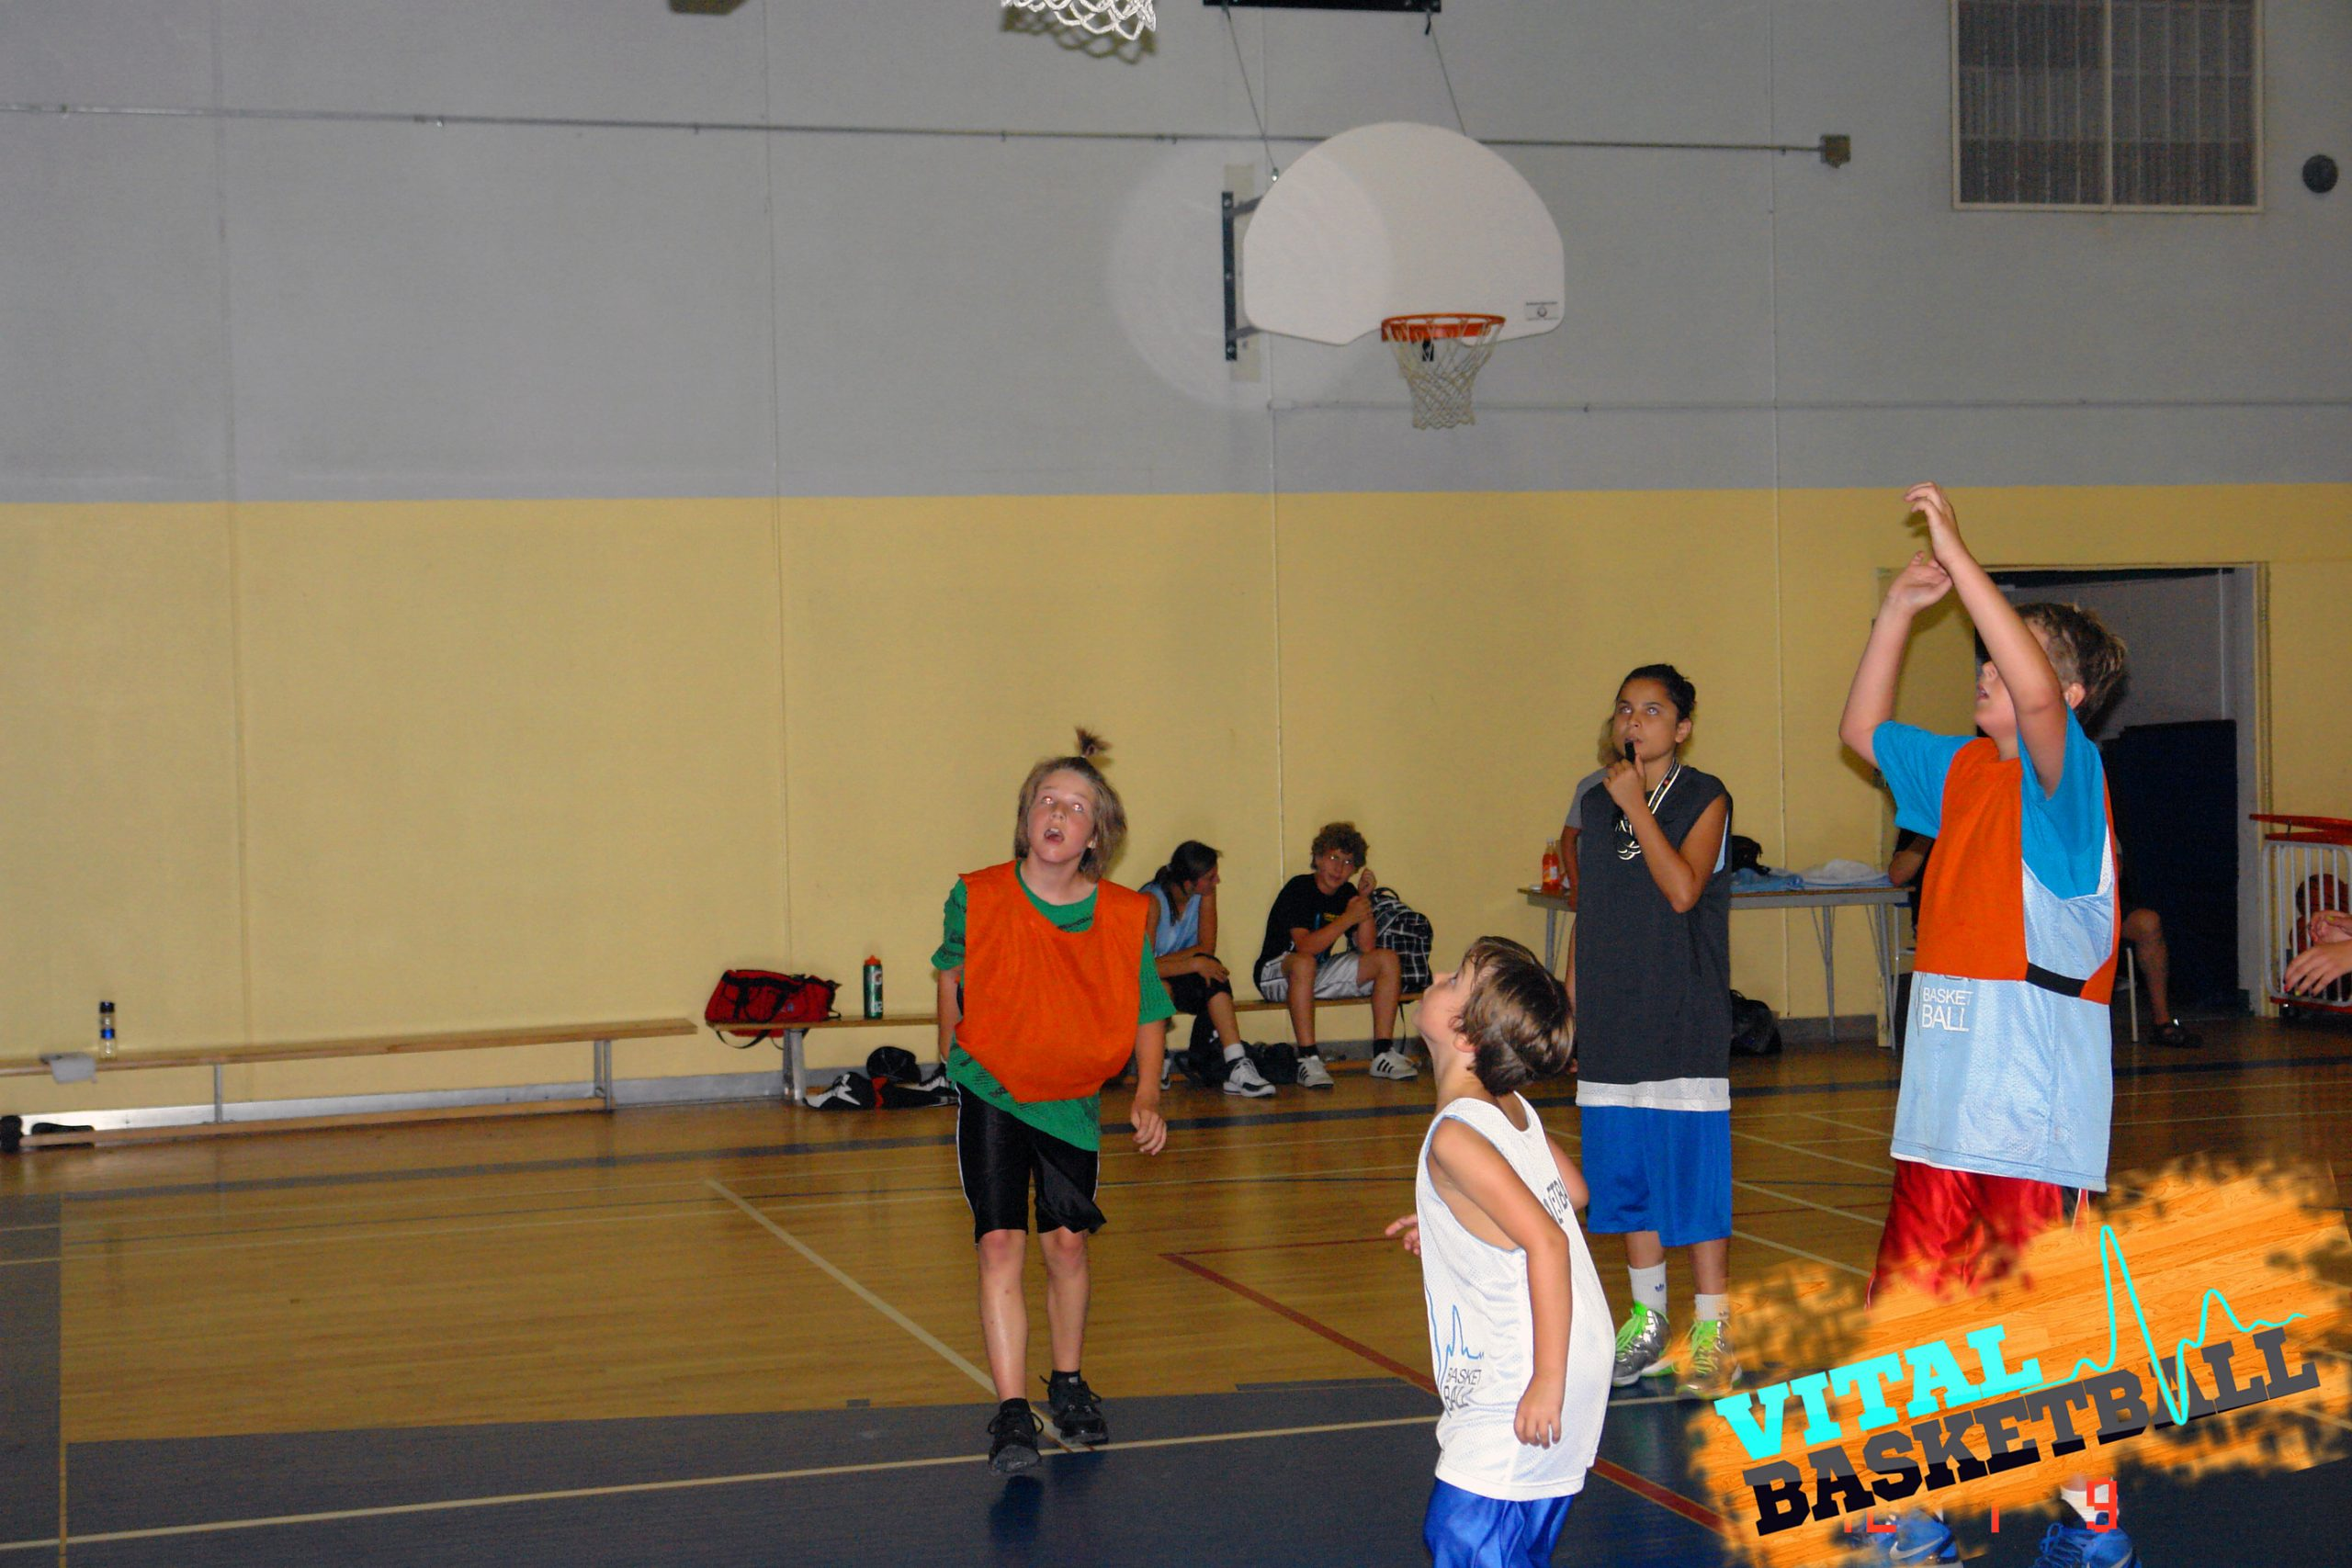 Camp développement, basketball